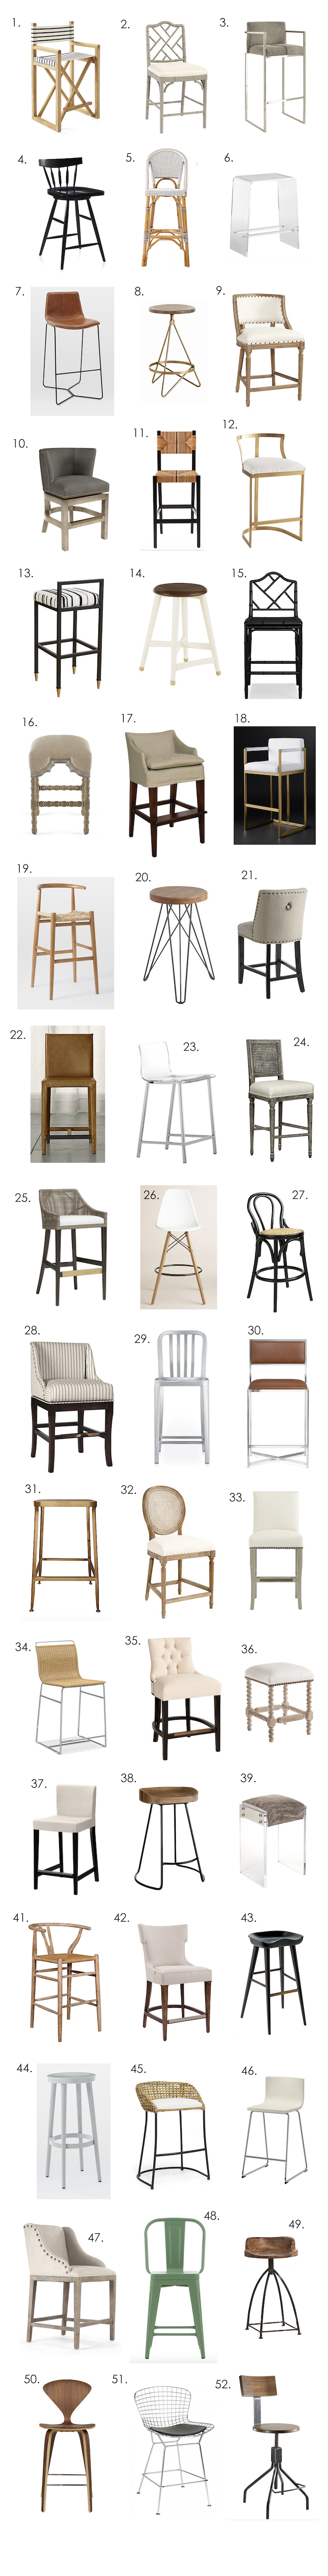 28 Barstools Giant Counter Stool Roundup Elements Of Style Blog